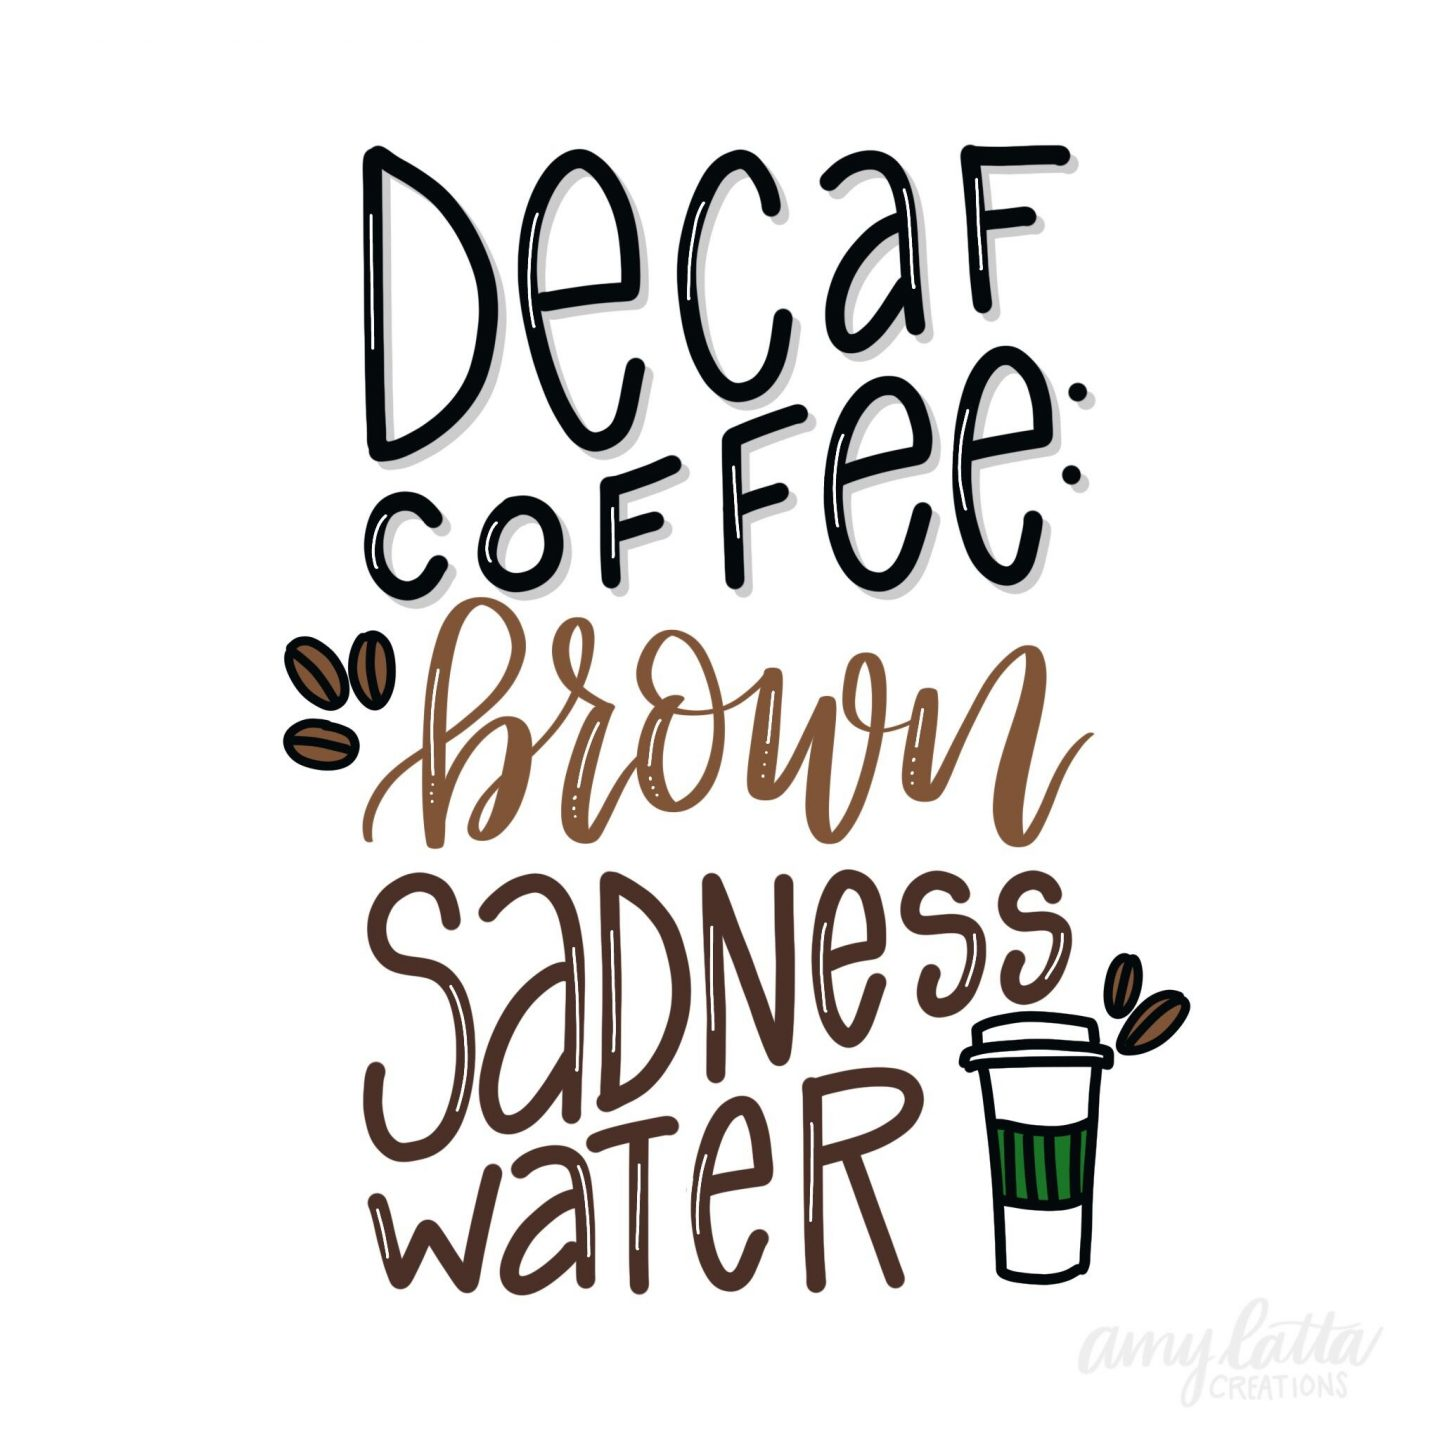 Funny quote about coffee with handlettering by Amy Latta. #humor #funnyquote #coffeequote #amylatta #handlettering